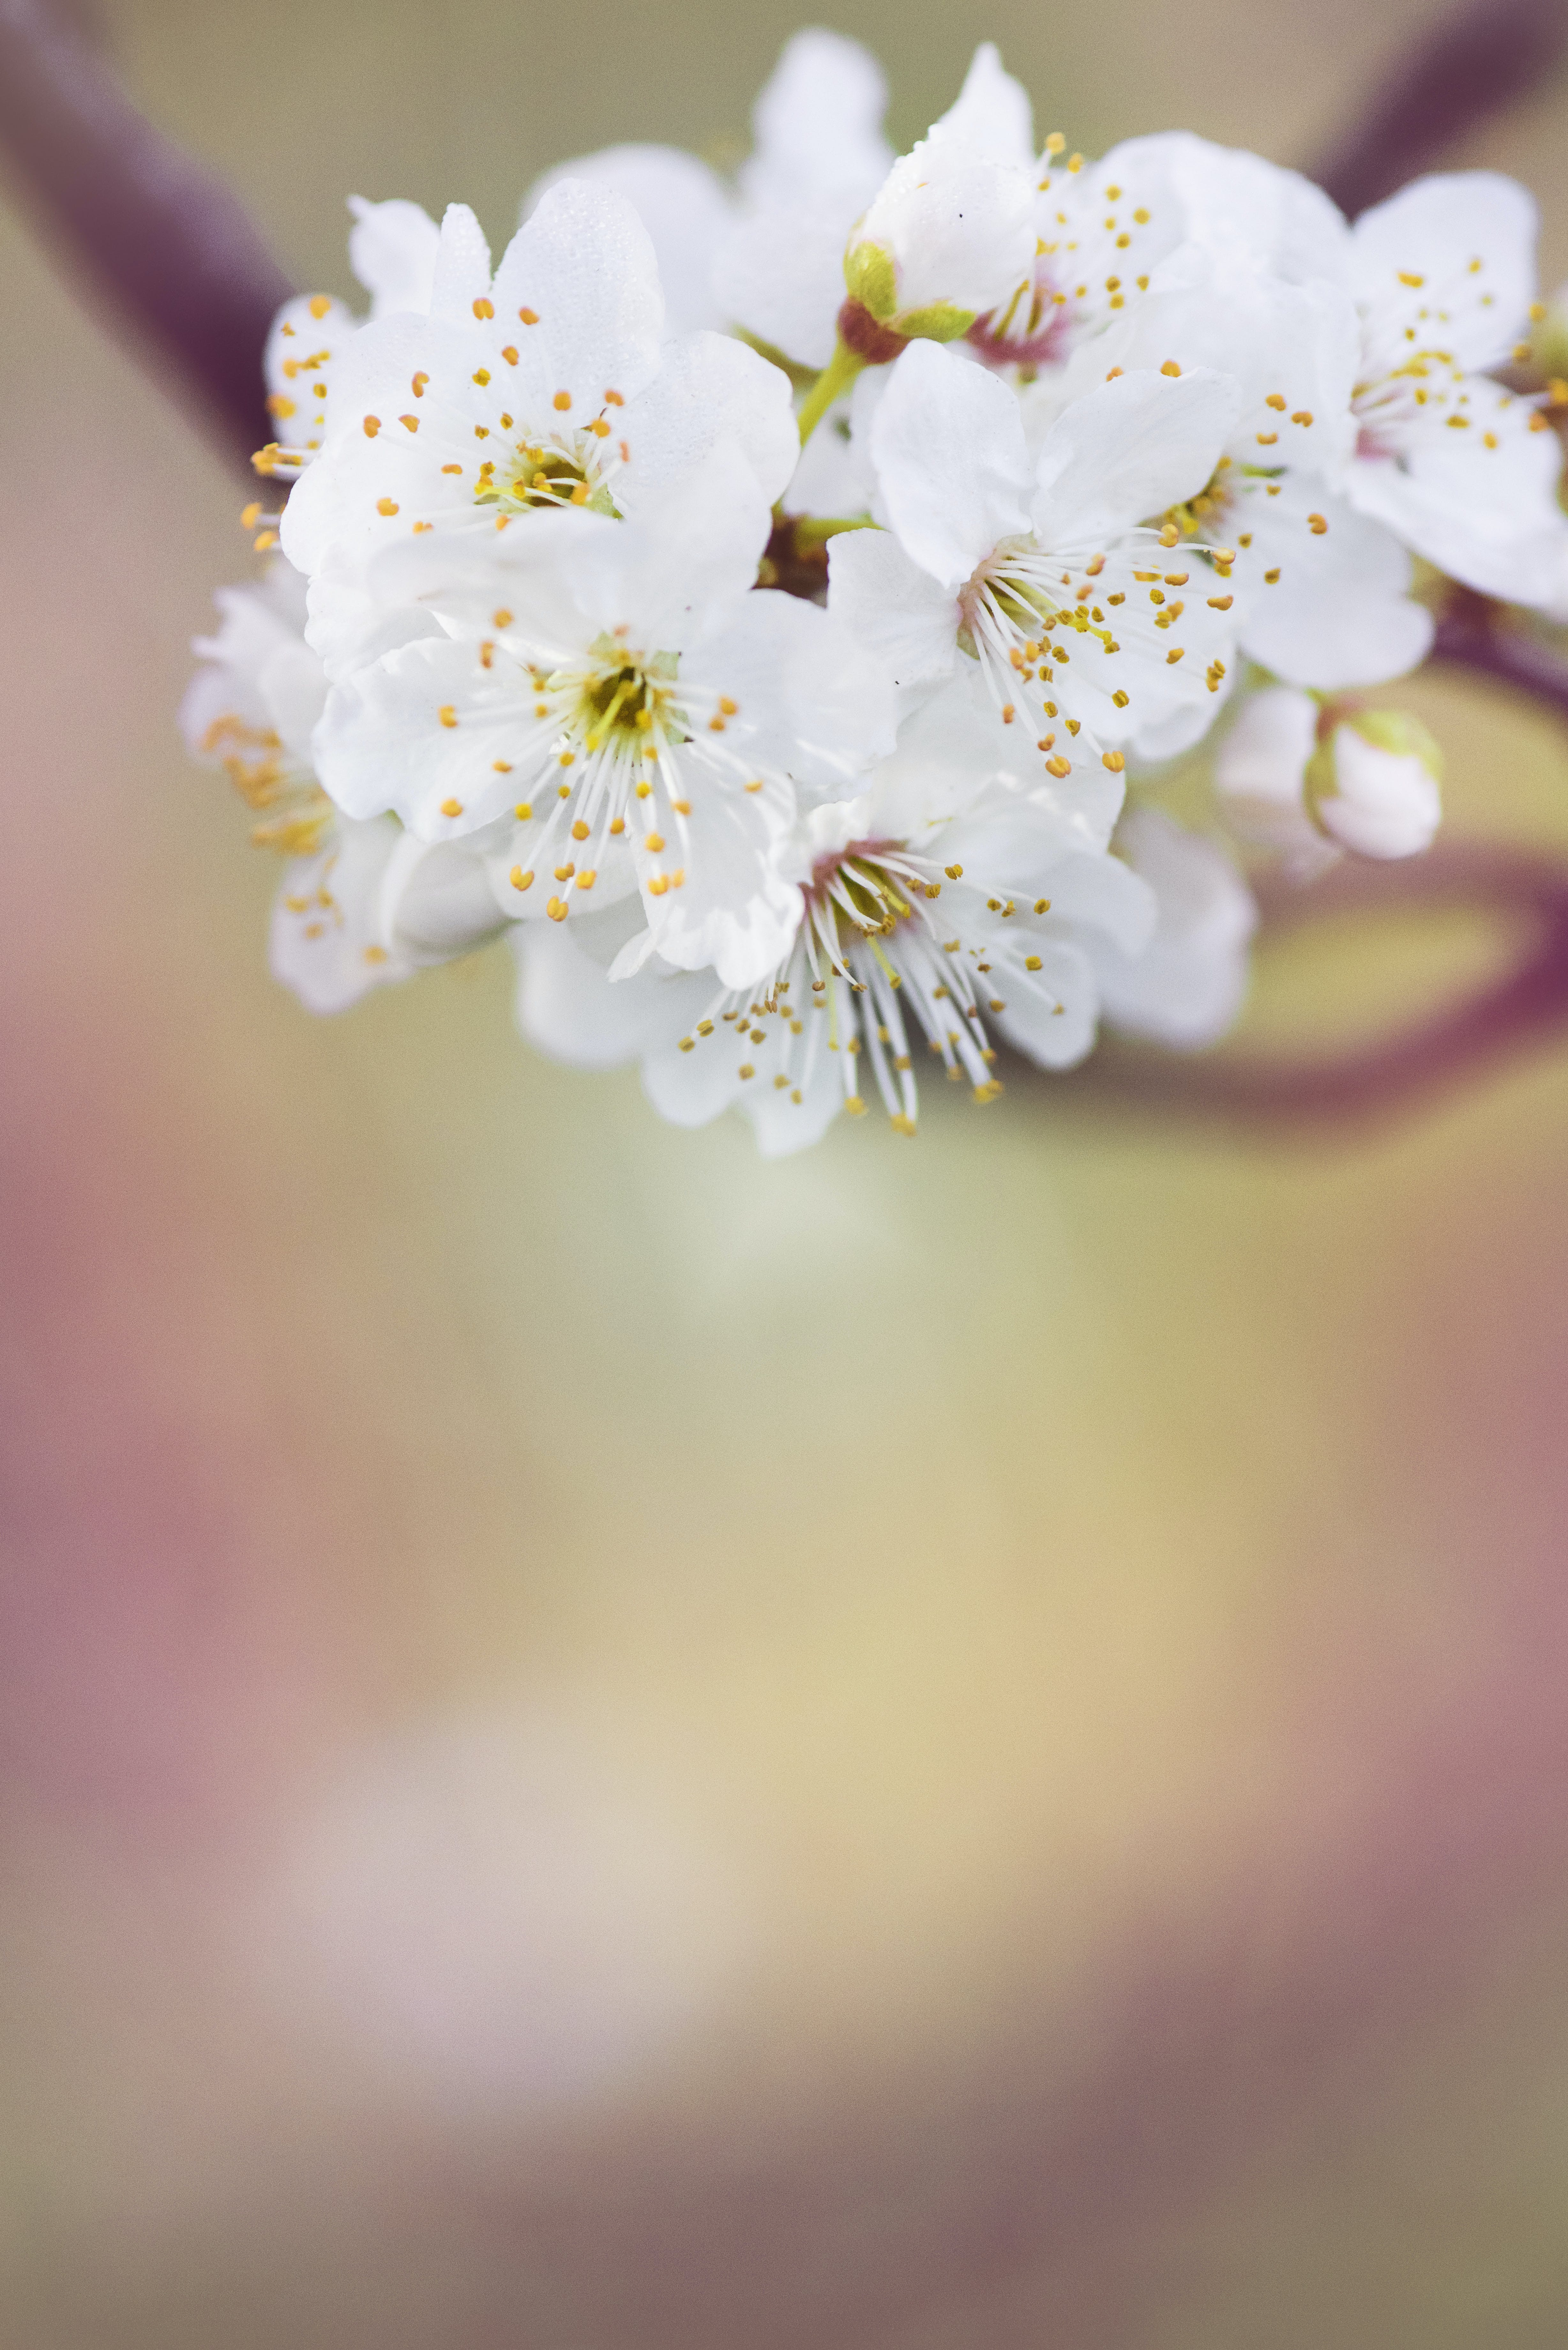 White Petaled Flower Selective Focus Photography